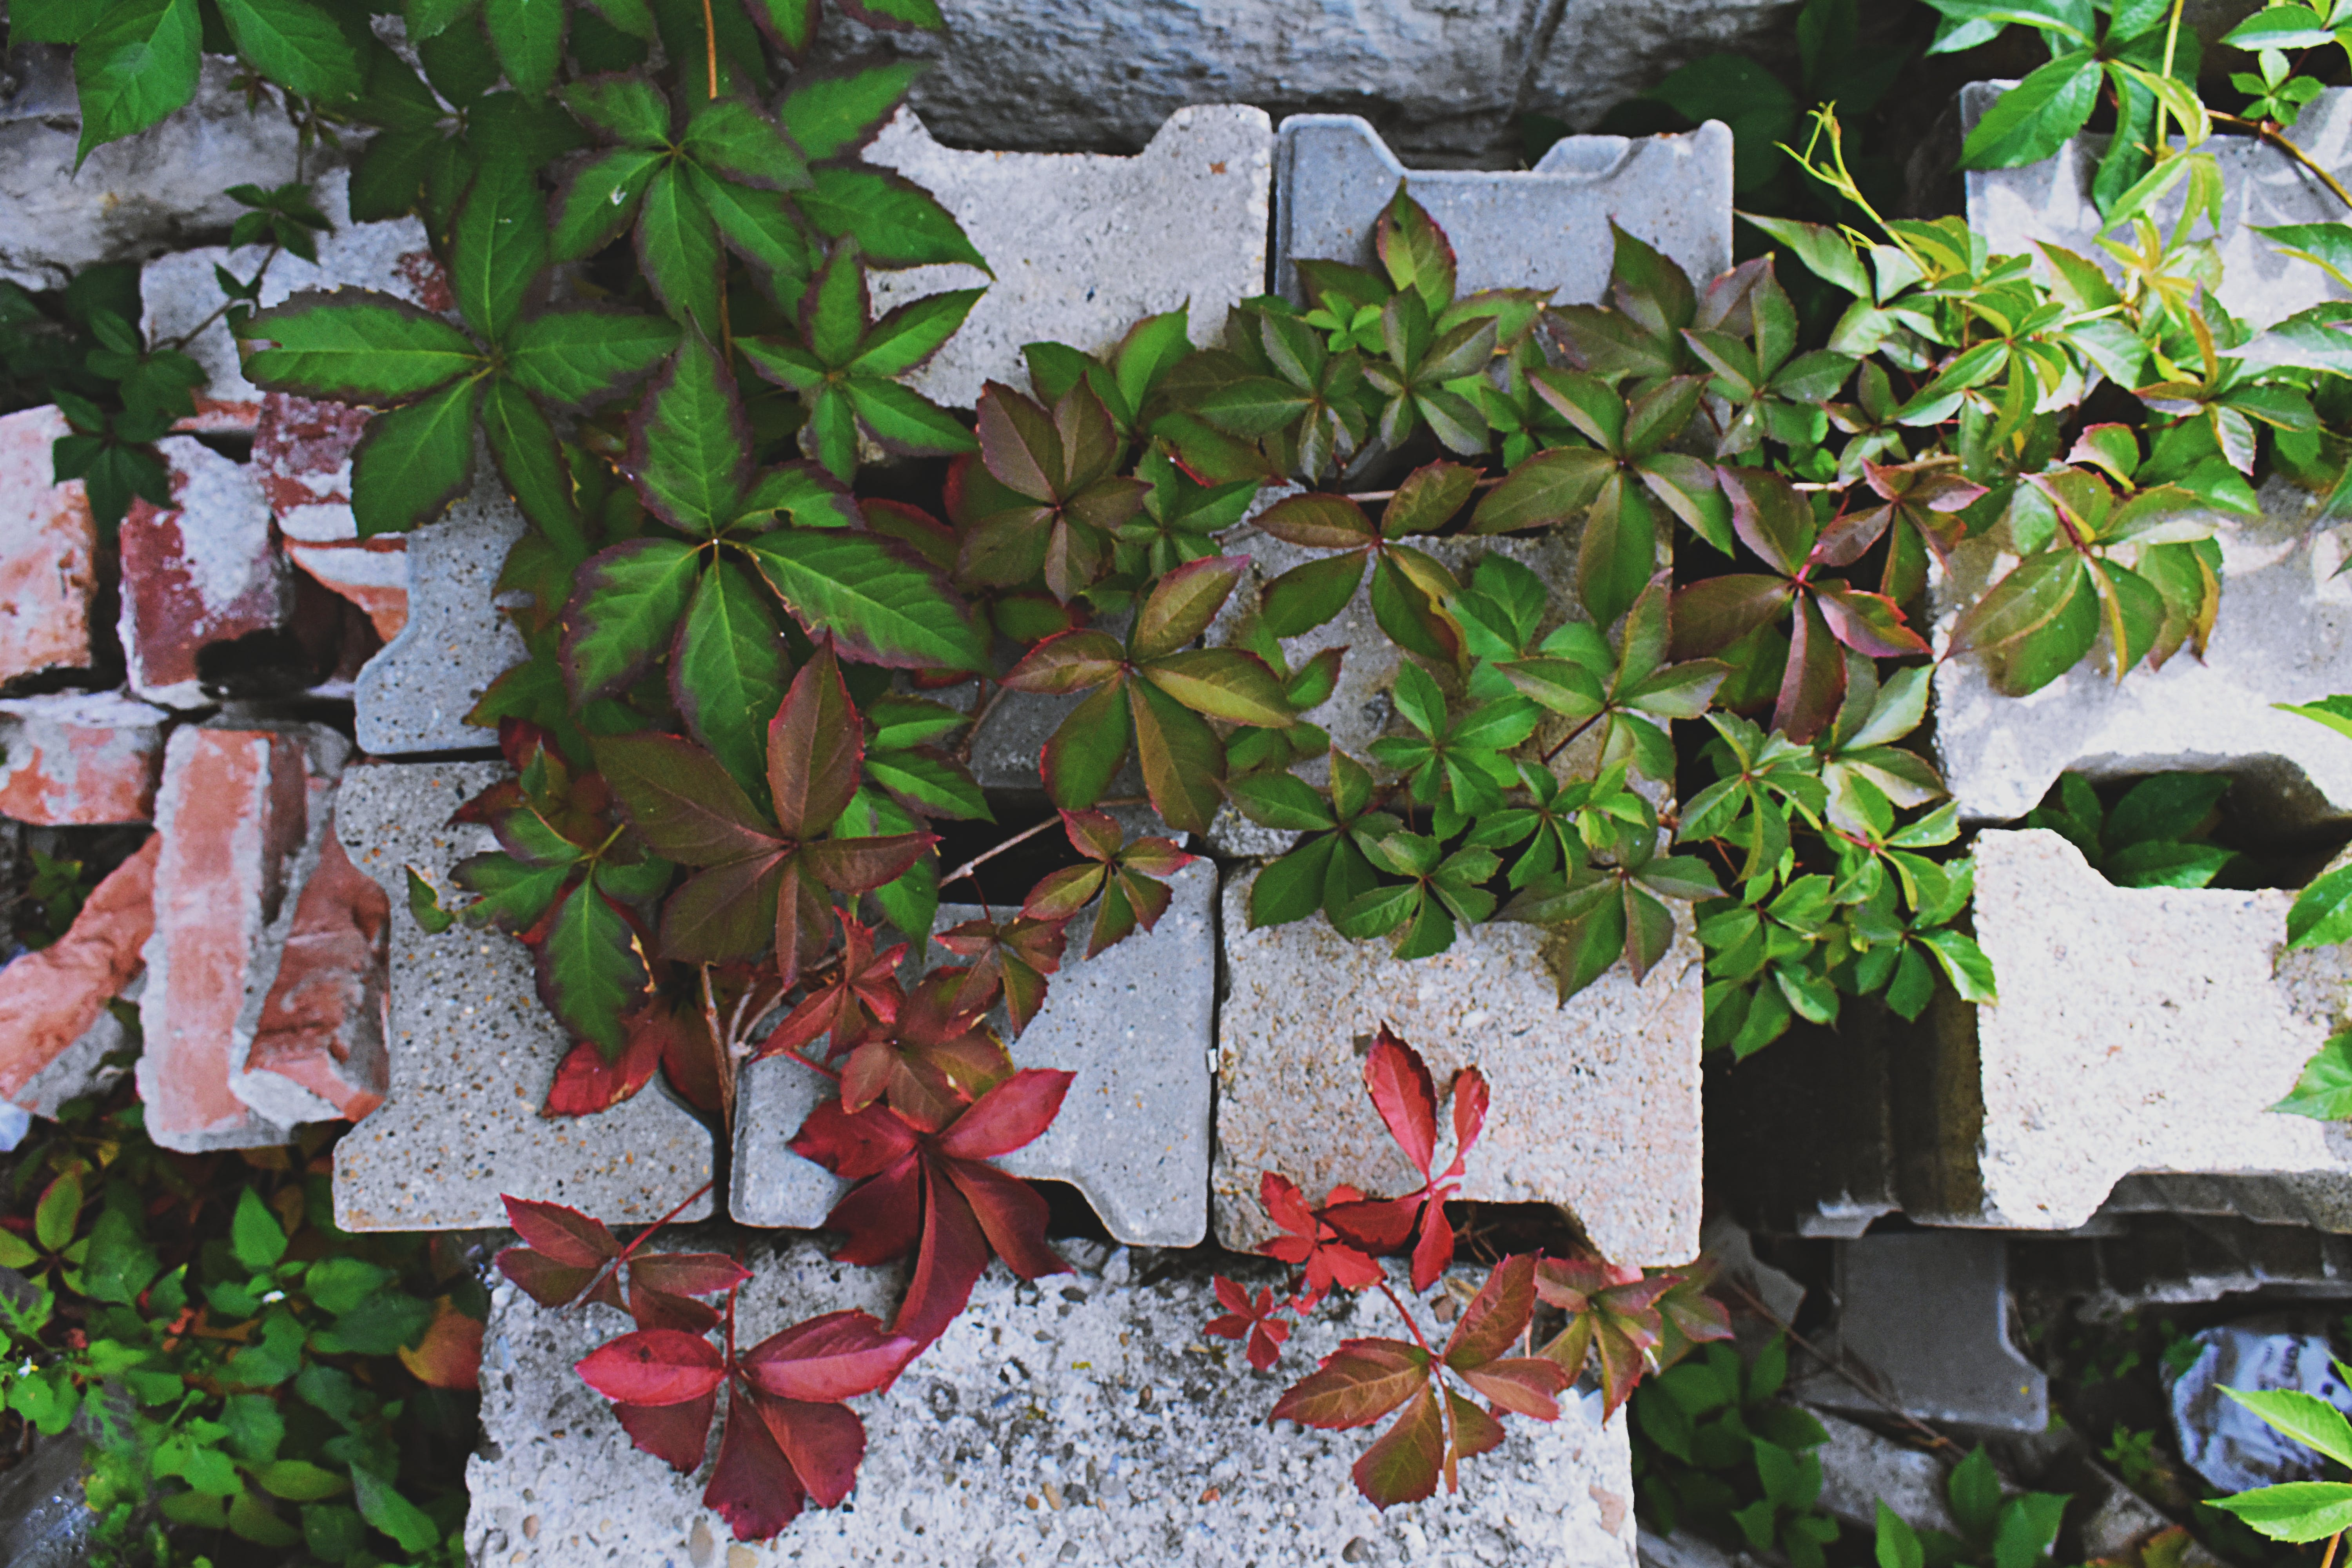 Brown and Green-leafed Plants on Bricks